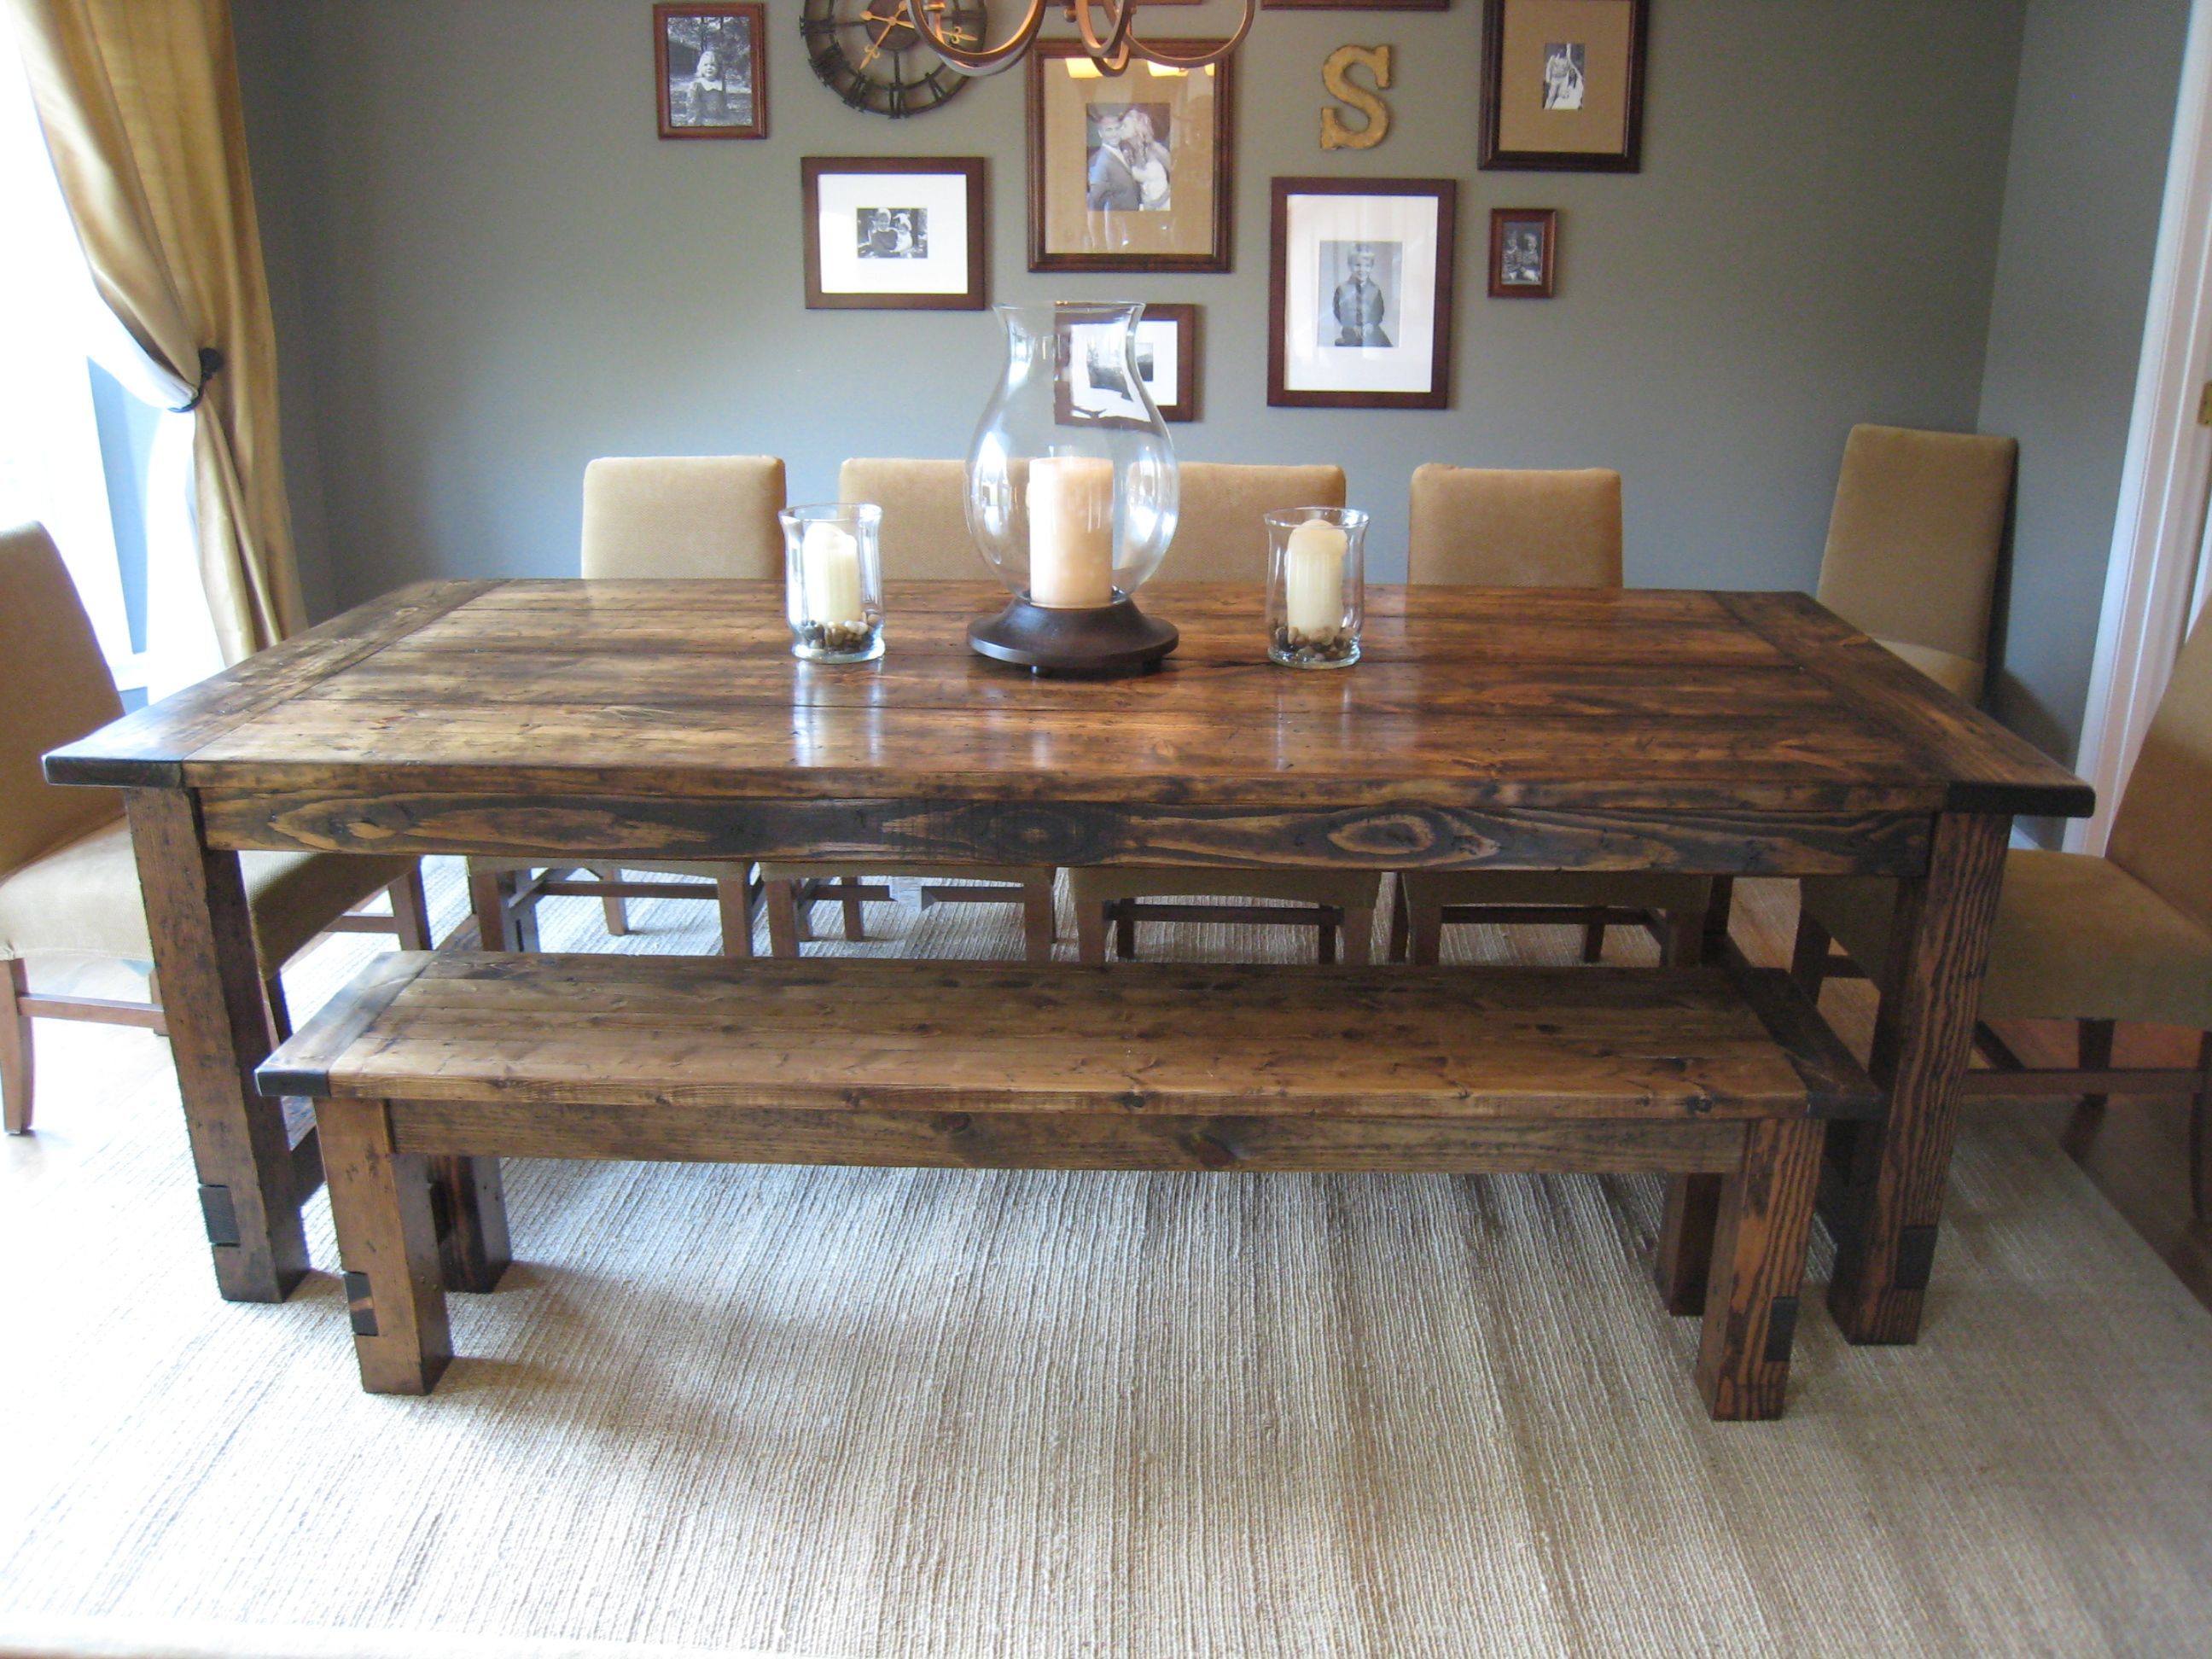 Restoration Hardware Farmhouse Table Replica. They made it